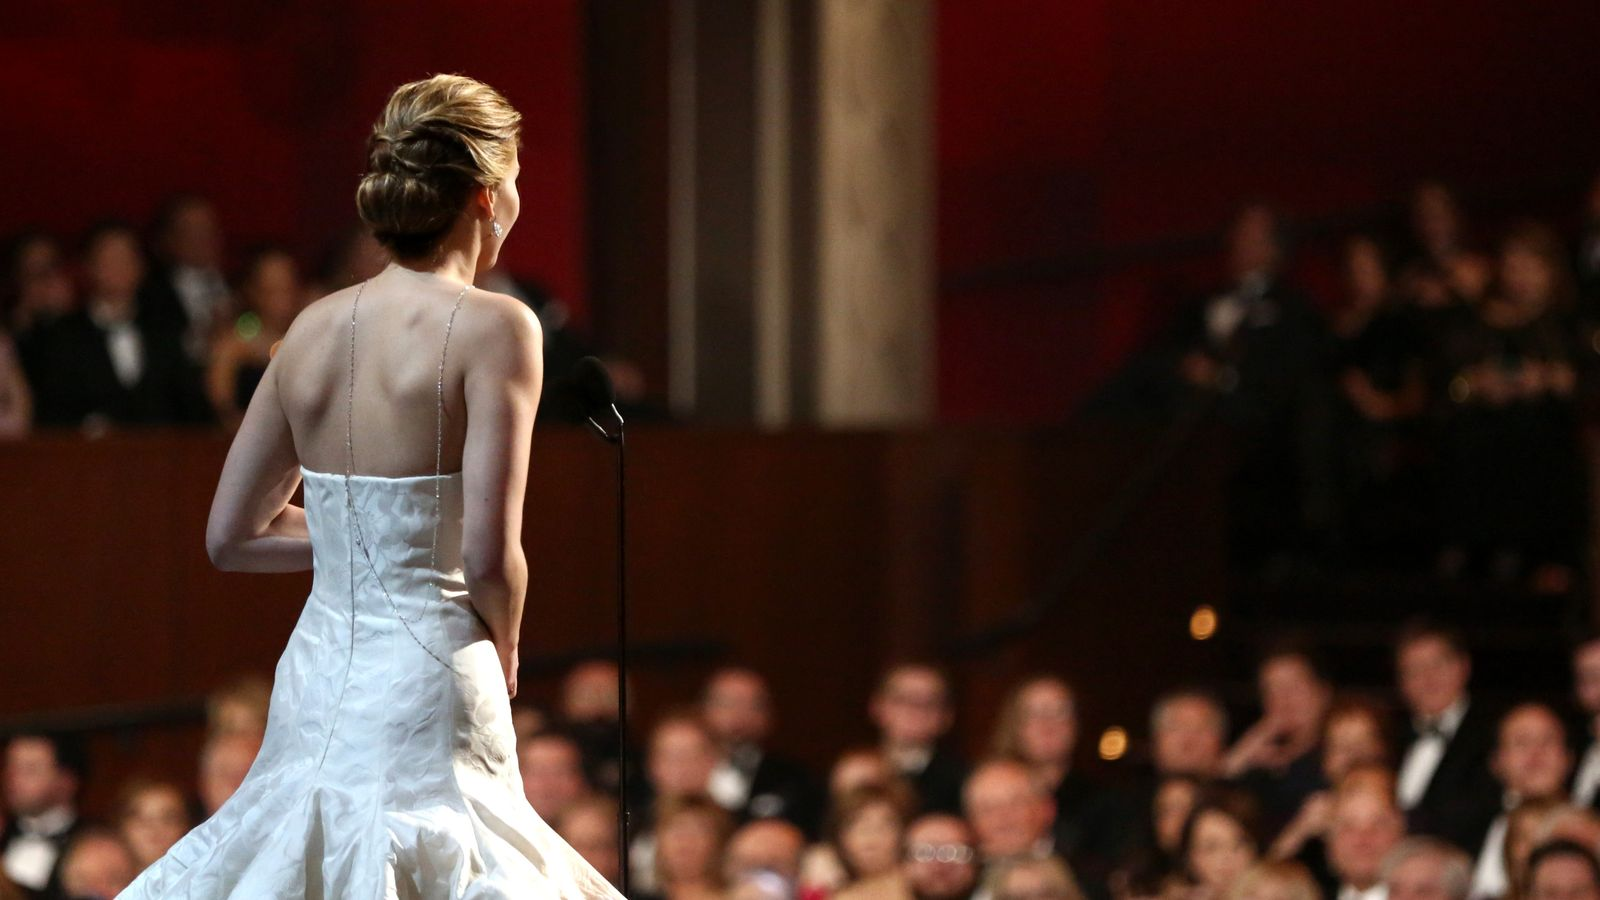 Oscars 2021: How to watch, which celebs will be there, who's up for what - everything you need to know about the Academy Awards